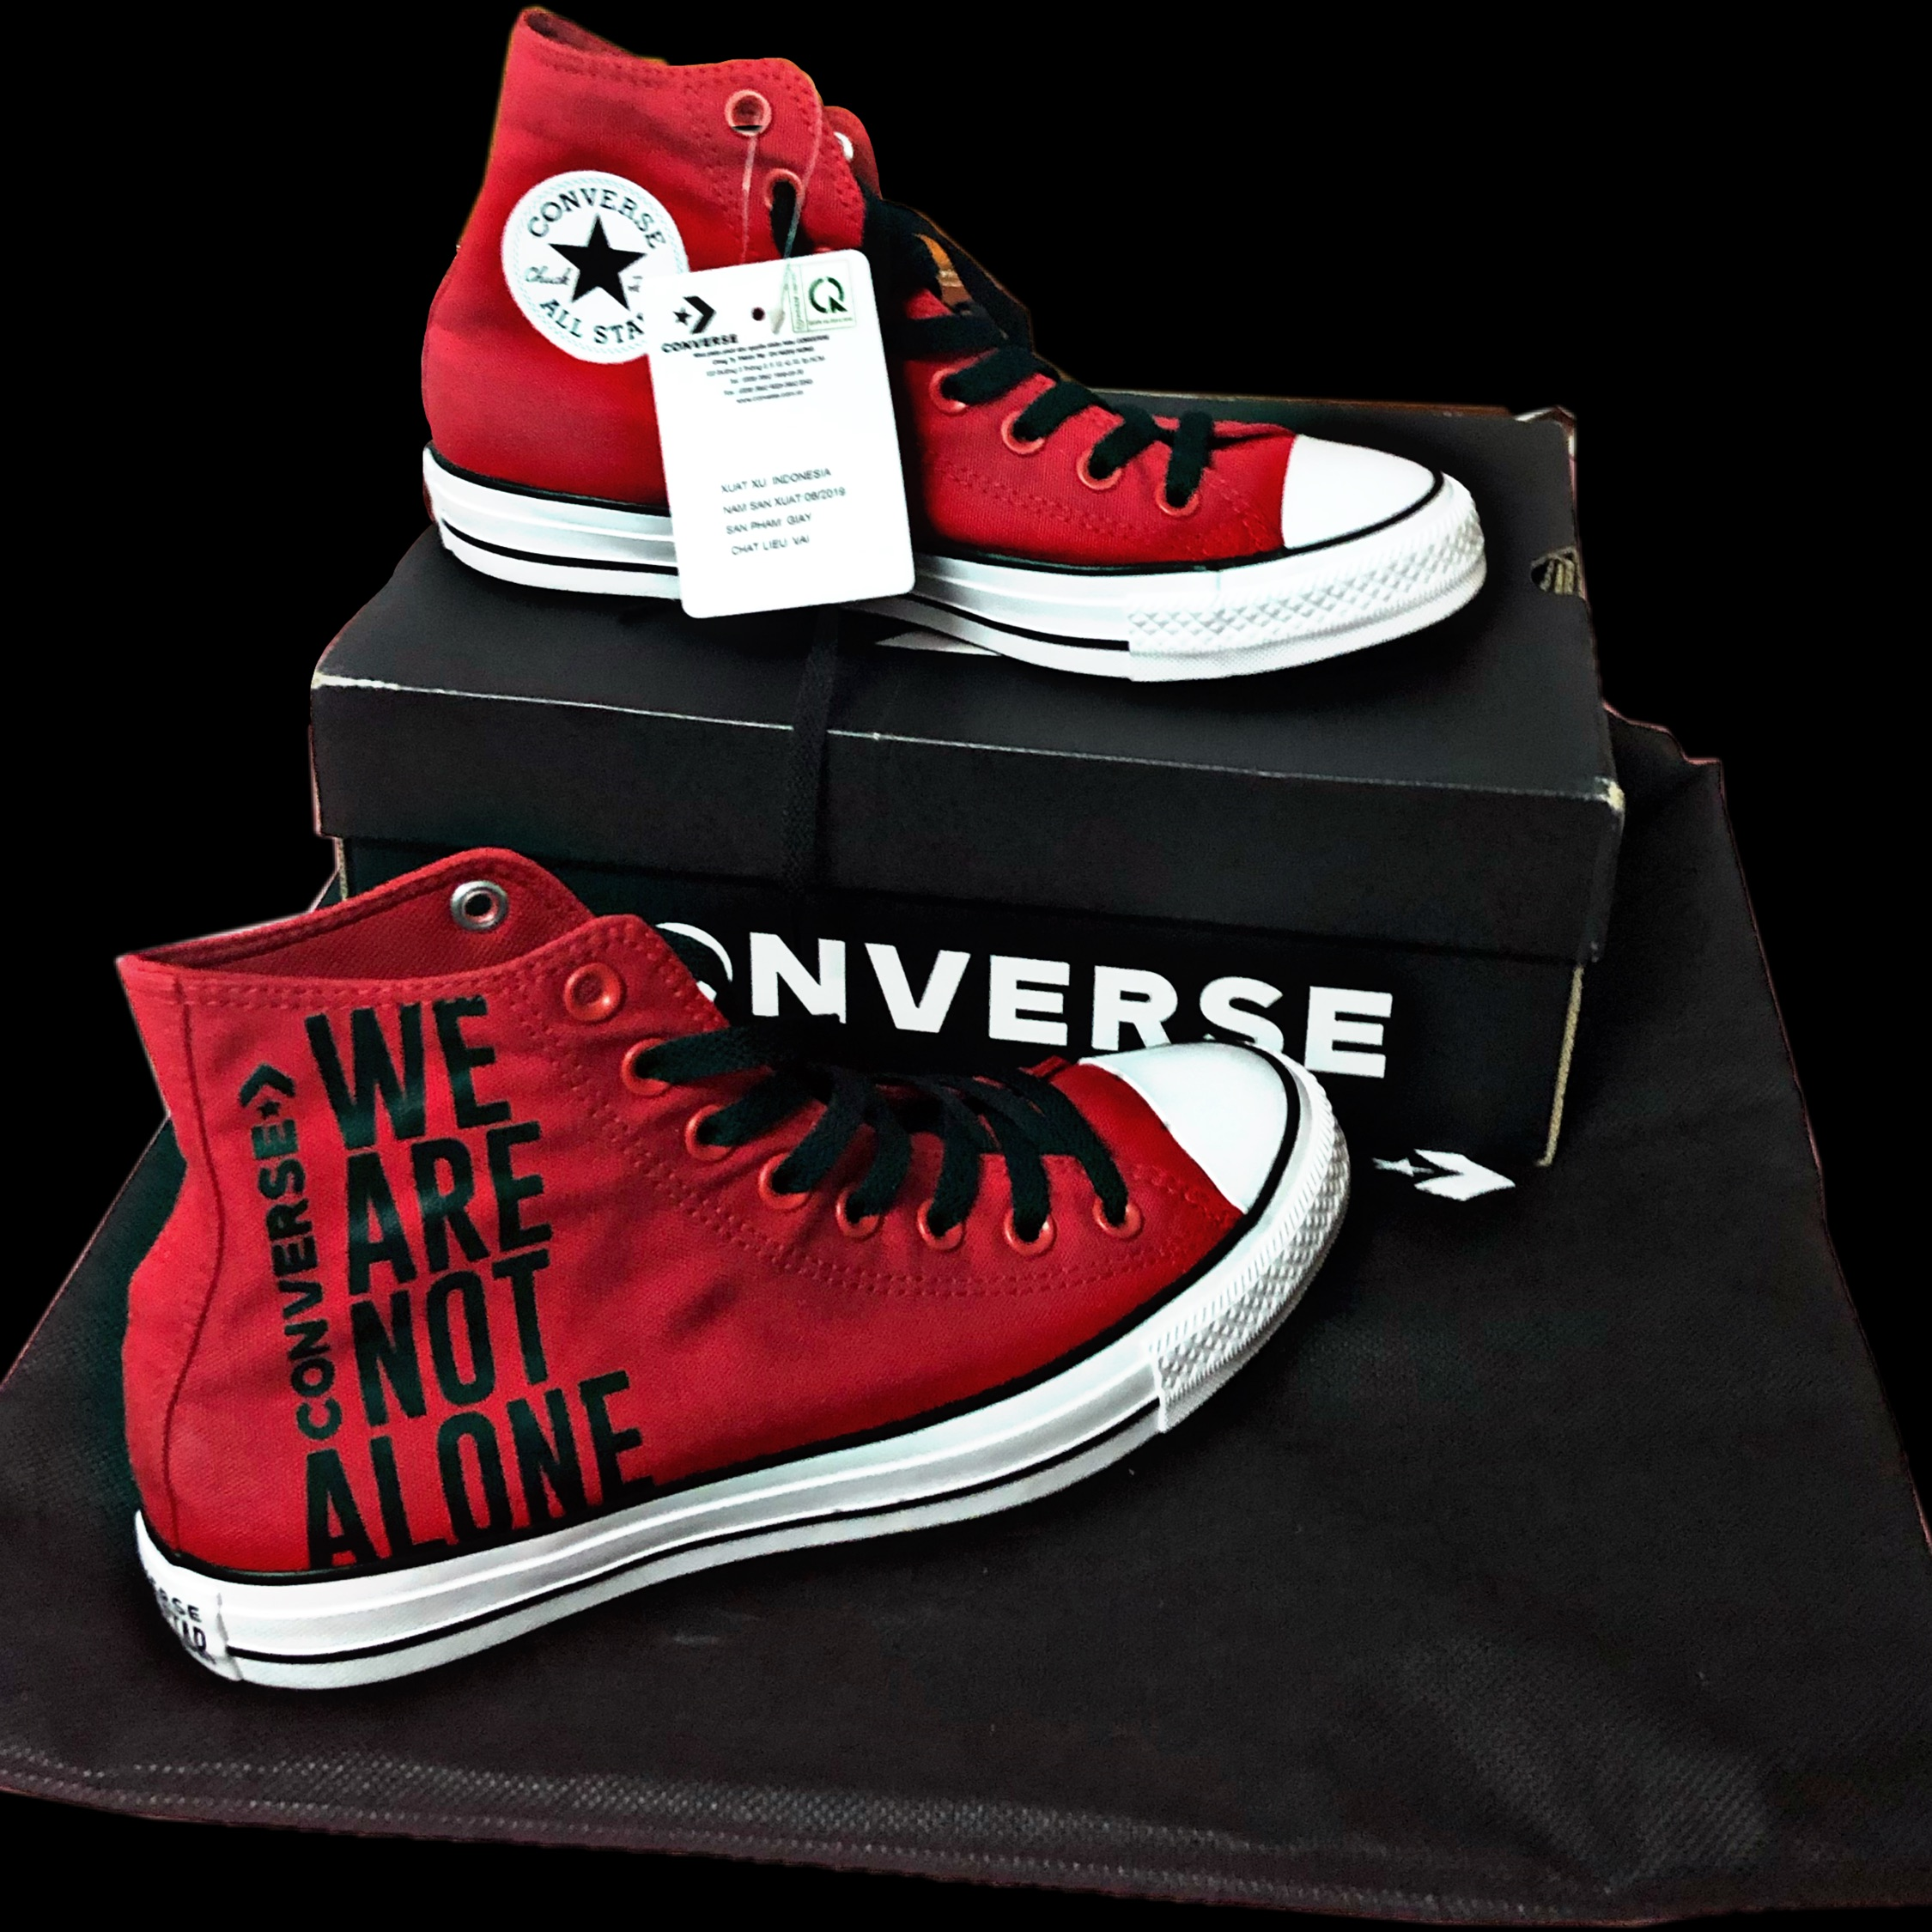 Converse Chuck Taylor All Star We Are Not Alone